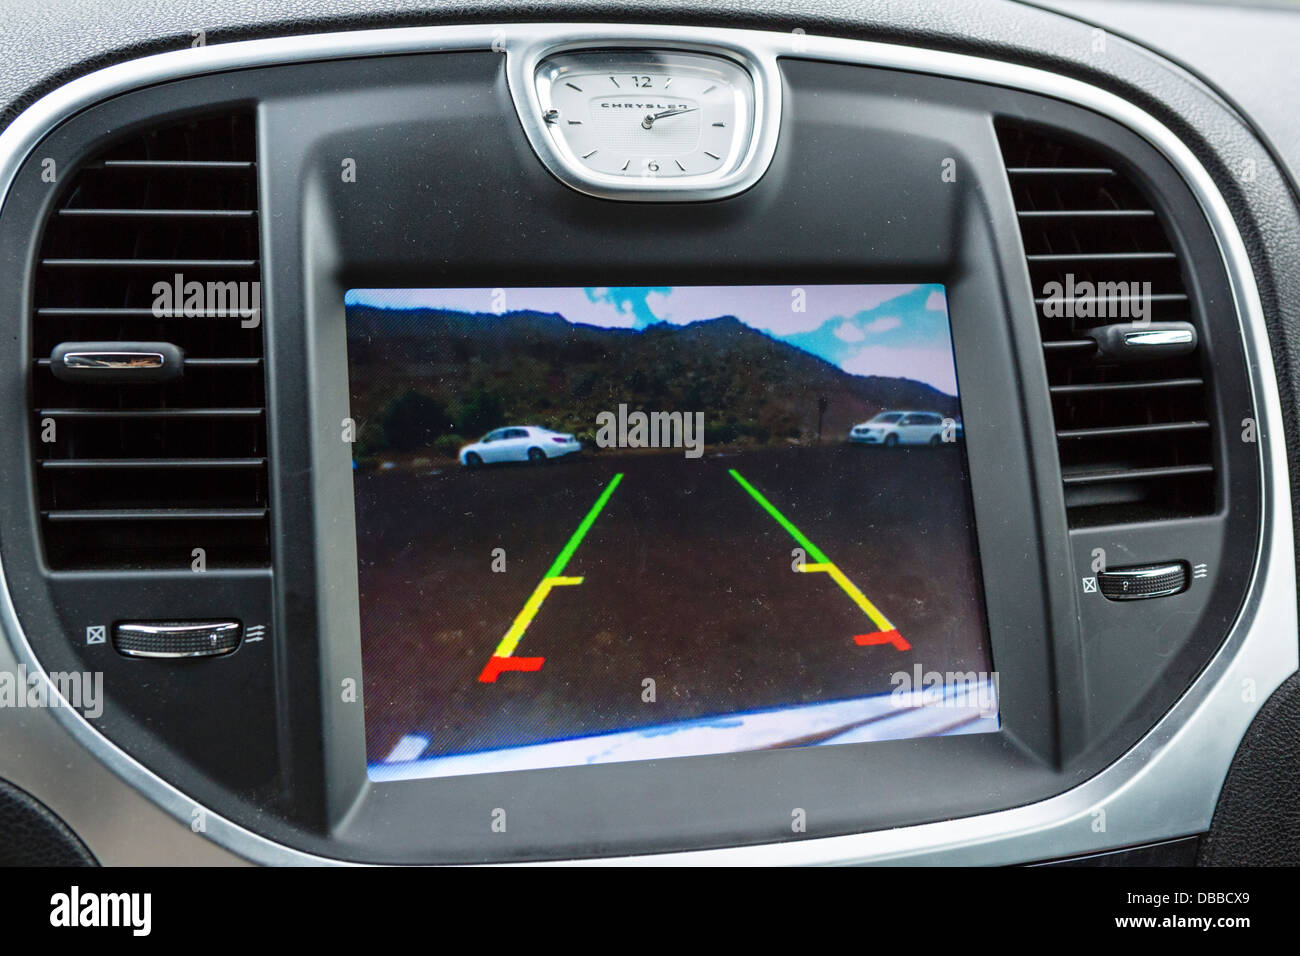 Dashboard screen showing image from Park View Rear Back-Up camera on a 2013 Chrysler 300C, USA - Stock Image